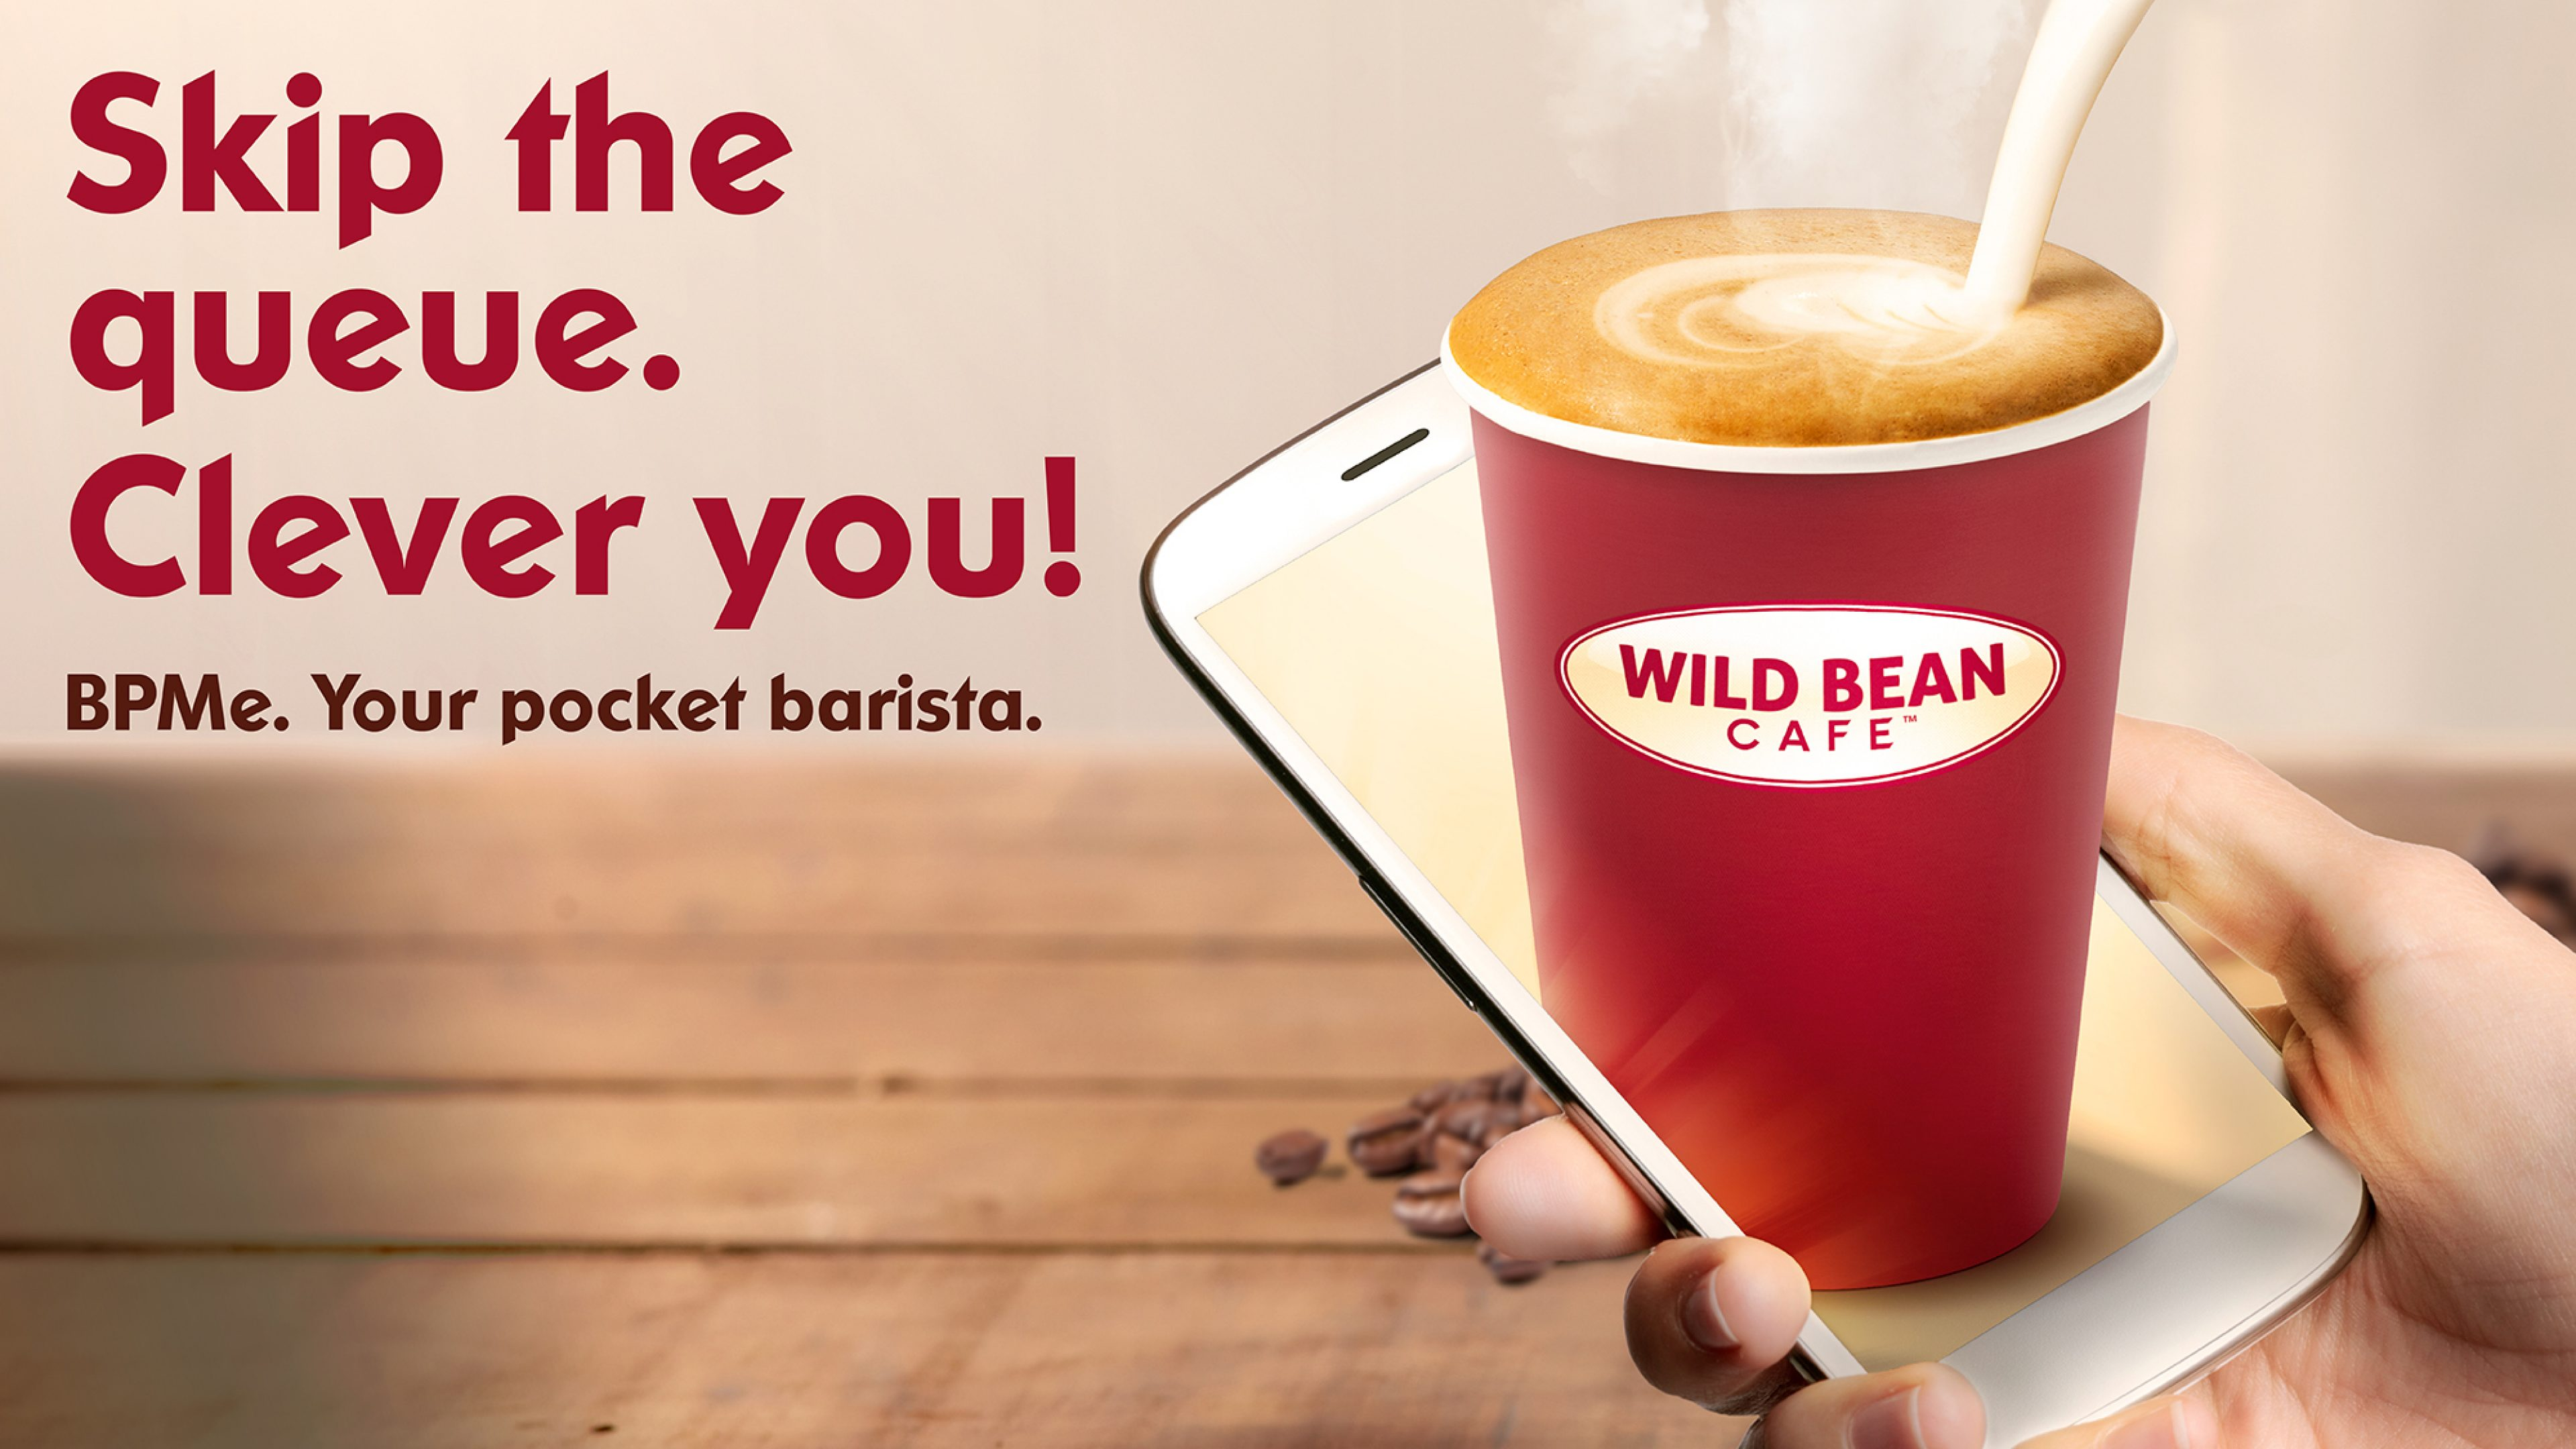 Skip the queue words with Wild Bean Cafe cup and phone